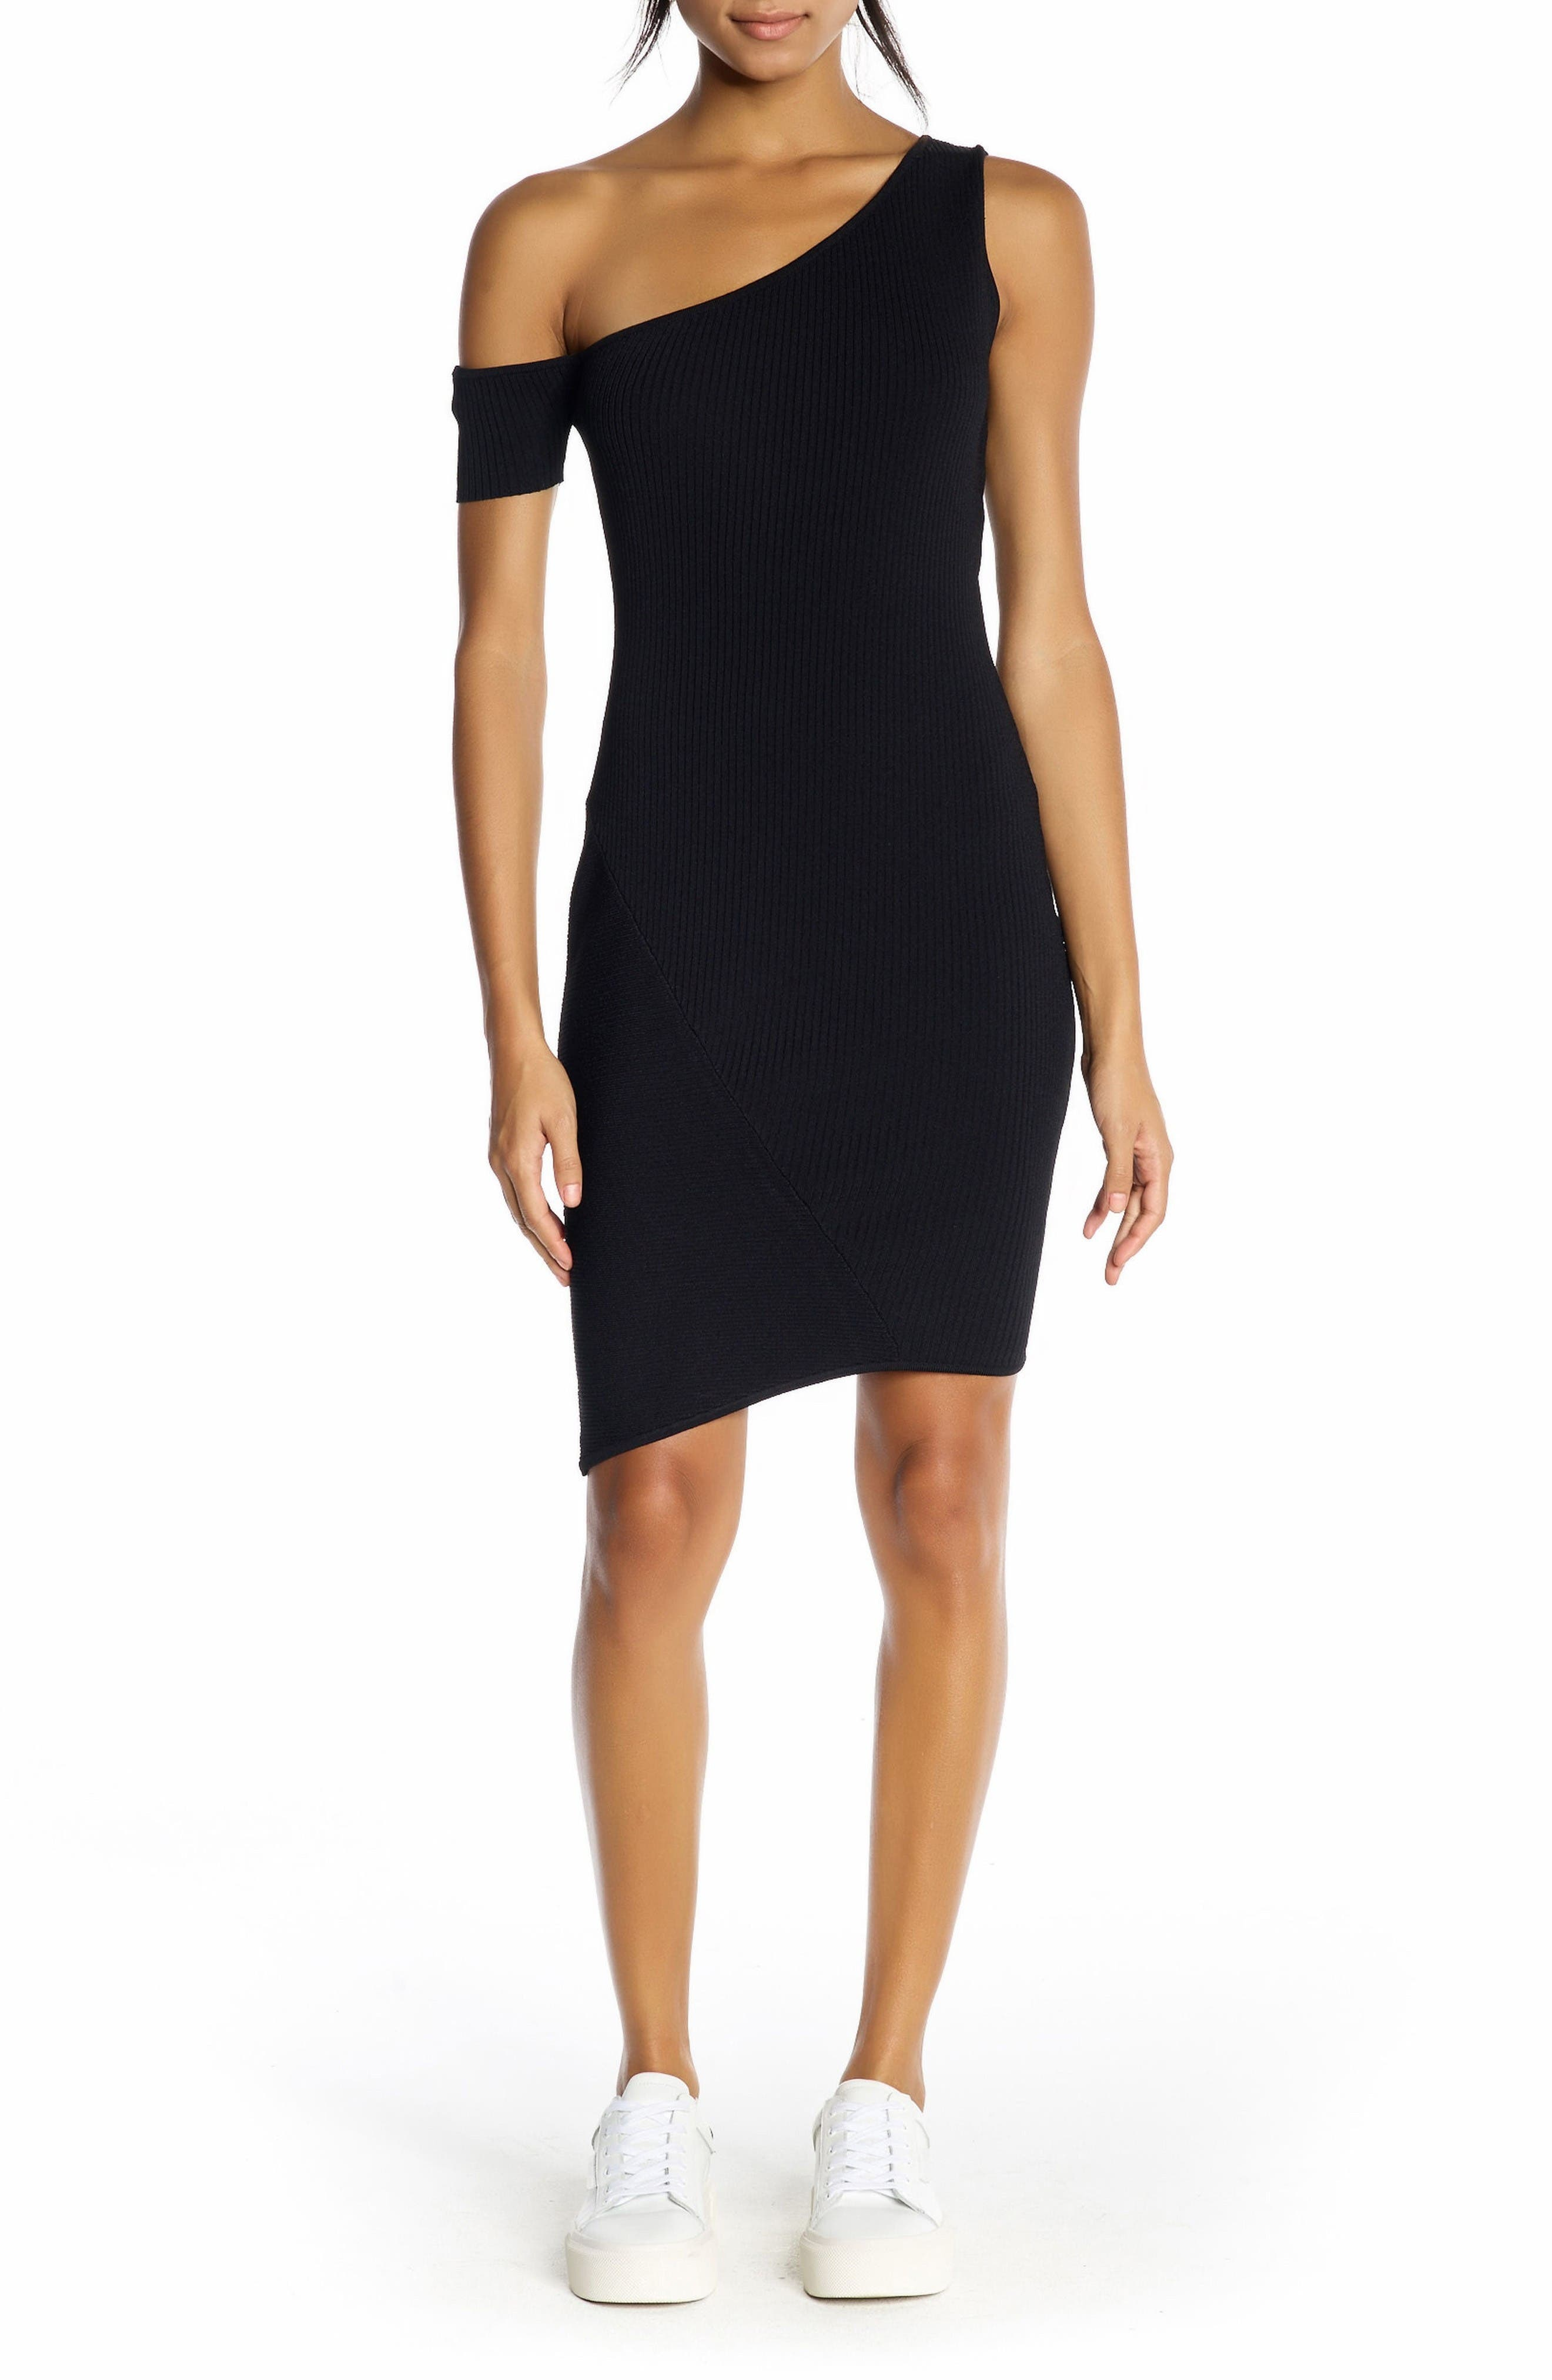 Alternate Image 1 Selected - KENDALL + KYLIE One-Shoulder Body-Con Dress